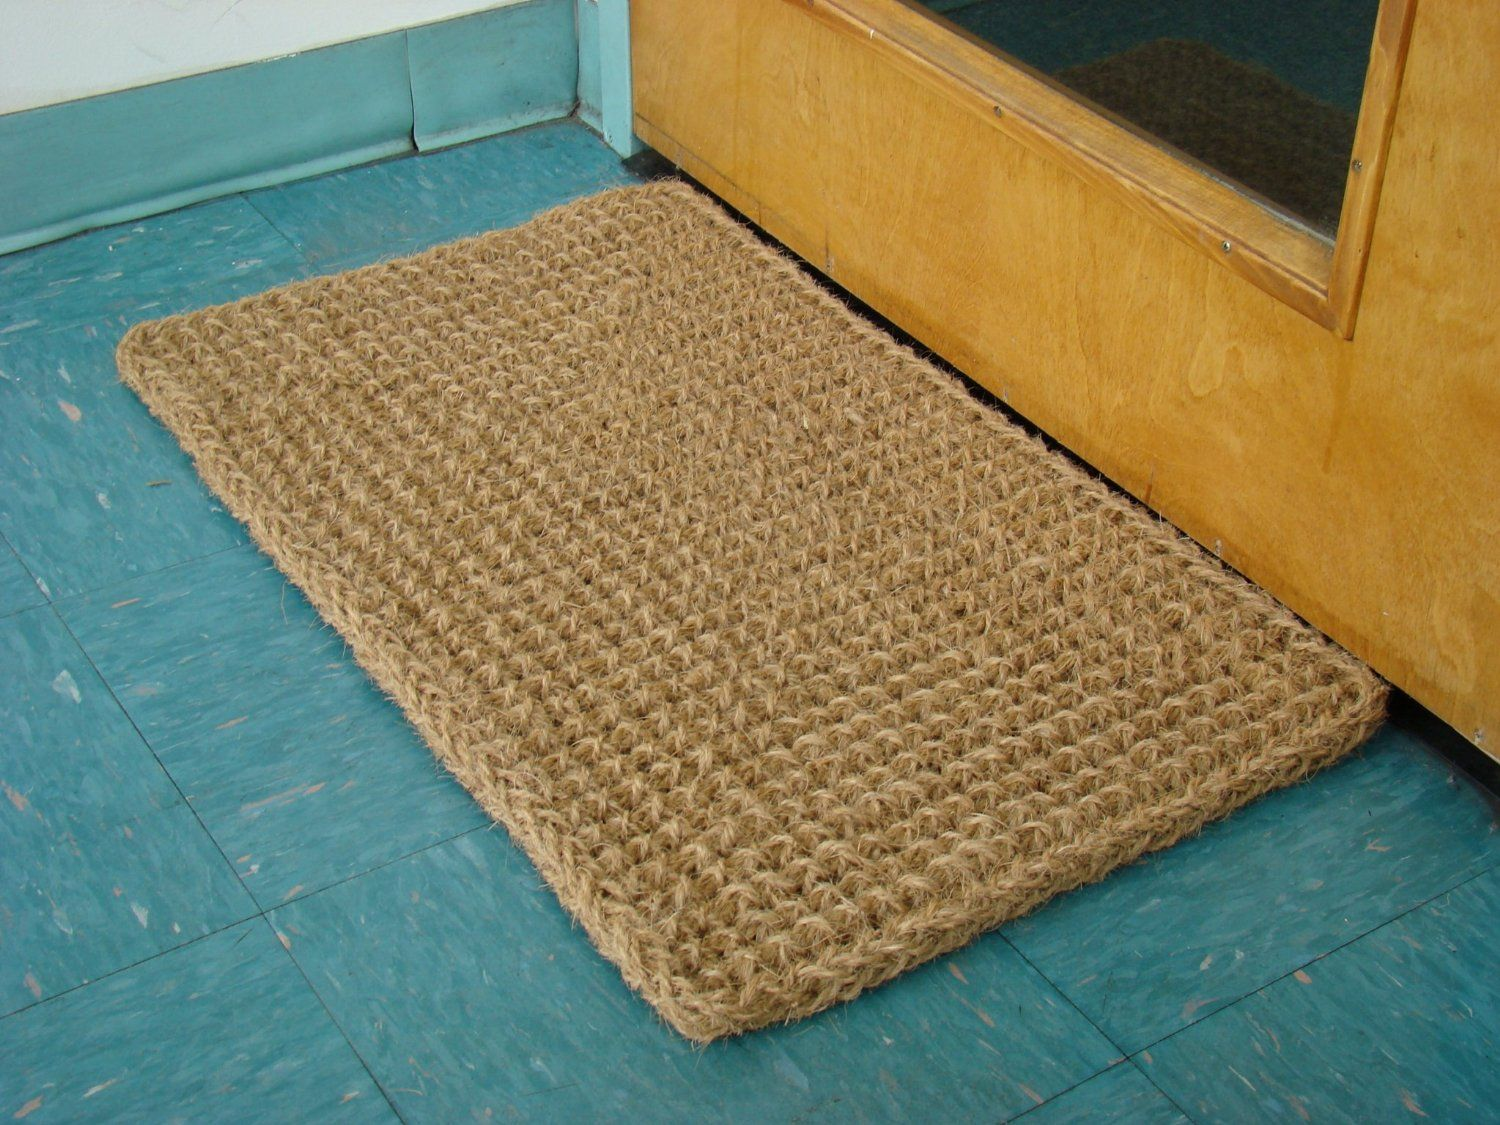 Amazon.com : Kempf Rectangle Dragon Coco Coir Doormat, 18 By 30 By 1